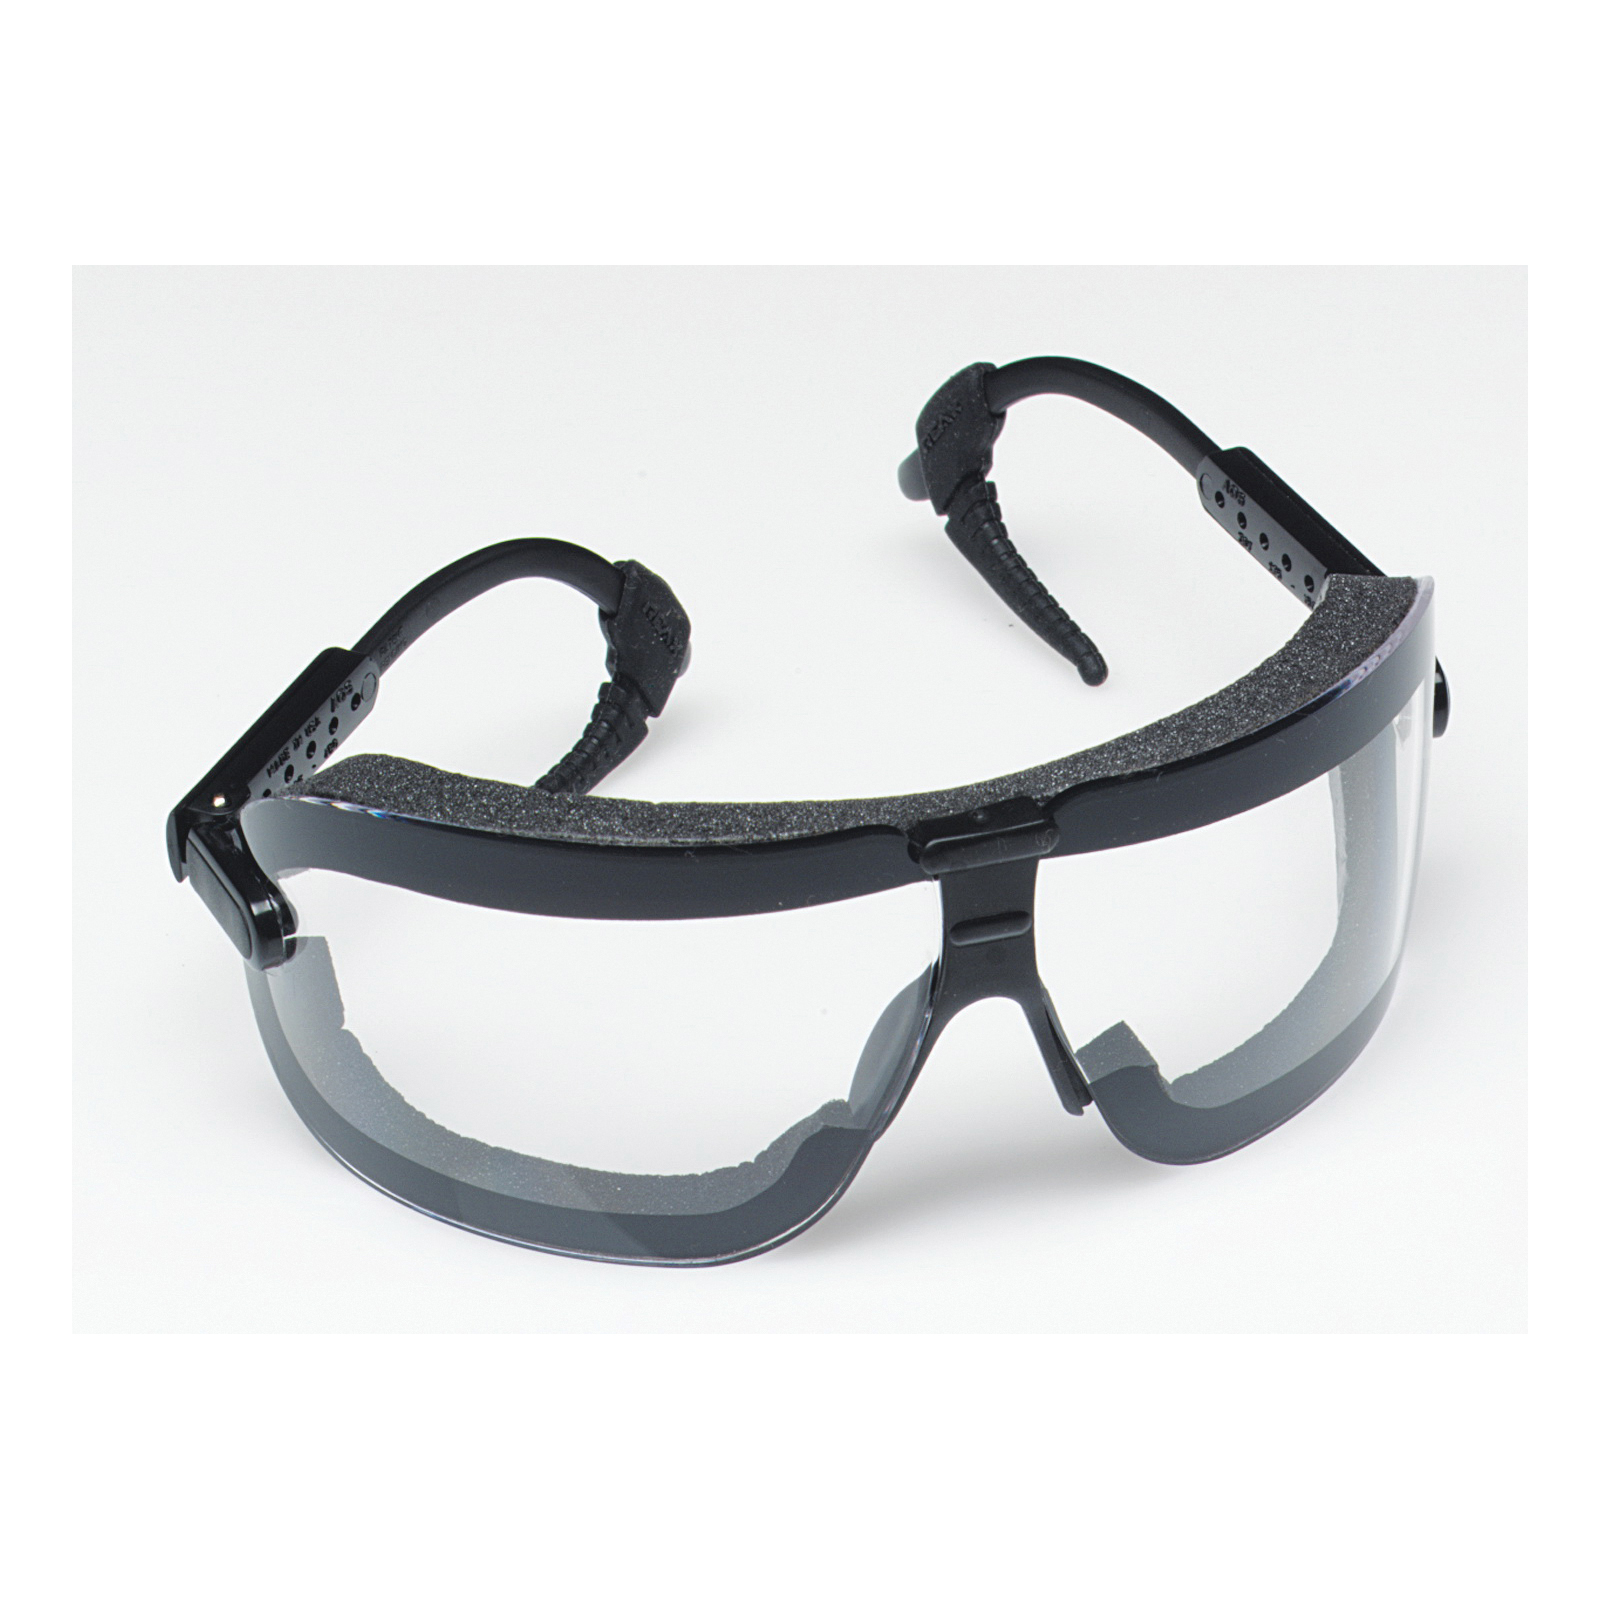 3M™ Fectoggles™ 078371-62322 Lightweight Safety Goggles, Anti-Fog/Anti-Scratch Clear Polycarbonate Lens, 99.9 % UV Protection, Elastic Strap, ANSI Z87.1-2015, CSA Z94.3